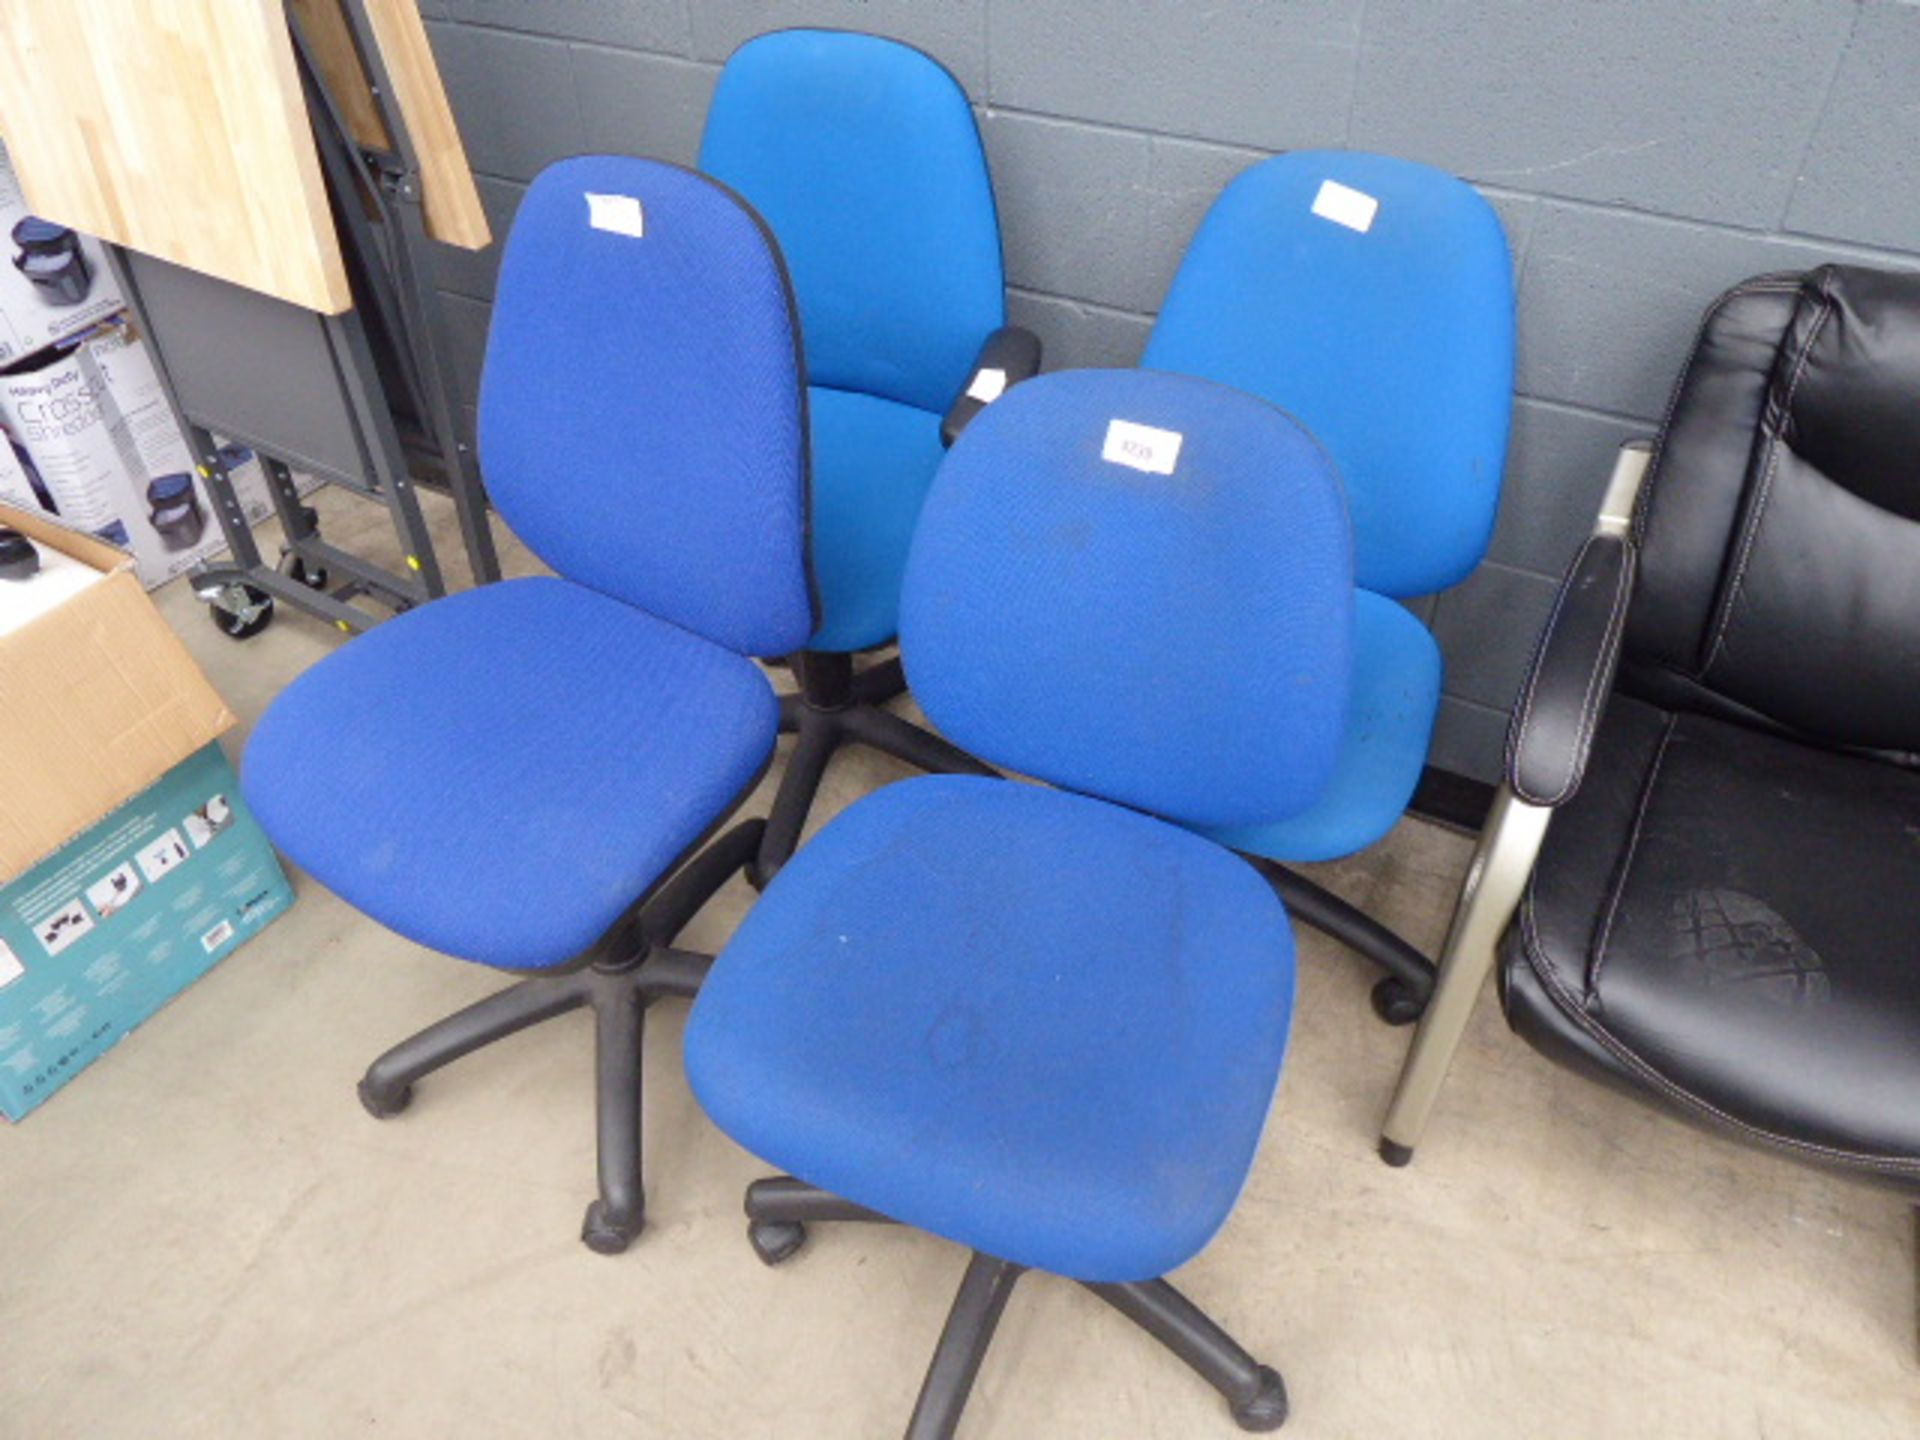 Lot 4239 - 4 Blue cloth chairs